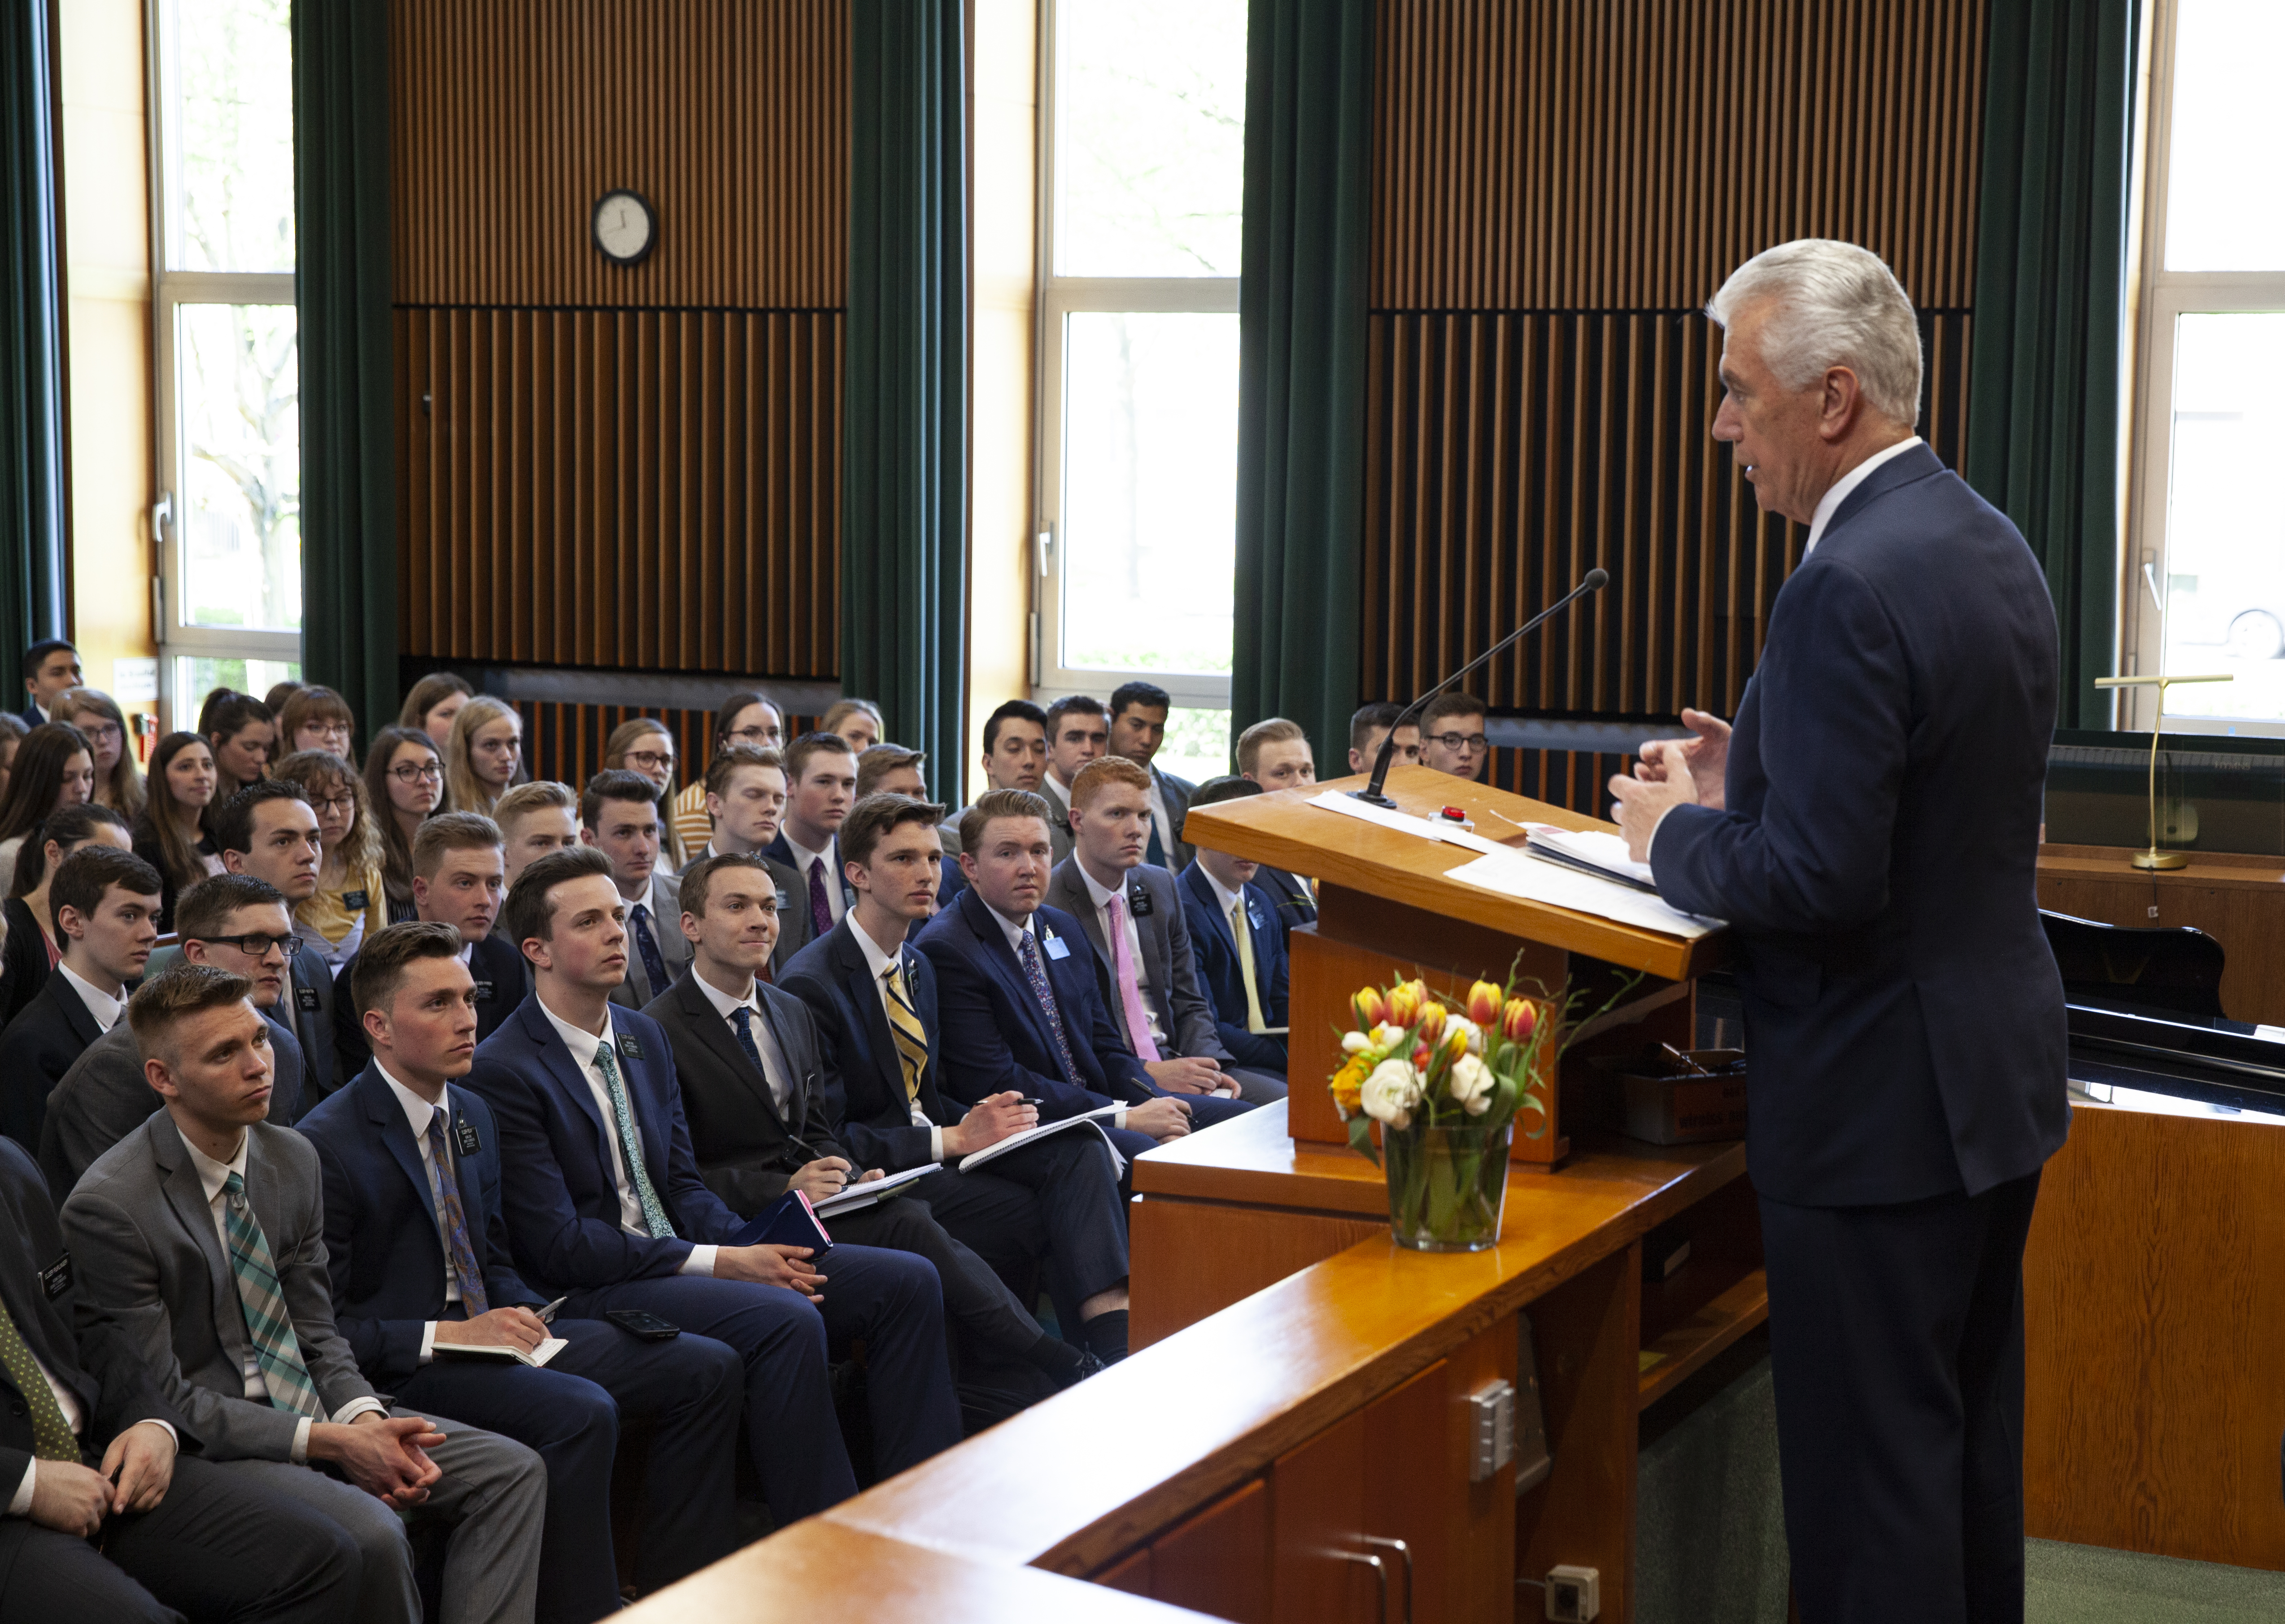 Elder Dieter F. Uchtdorf of the Quorum of the Twelve Apostles speaks to missionaries at a Germany Frankfurt Mission conference on April 18, 2019.